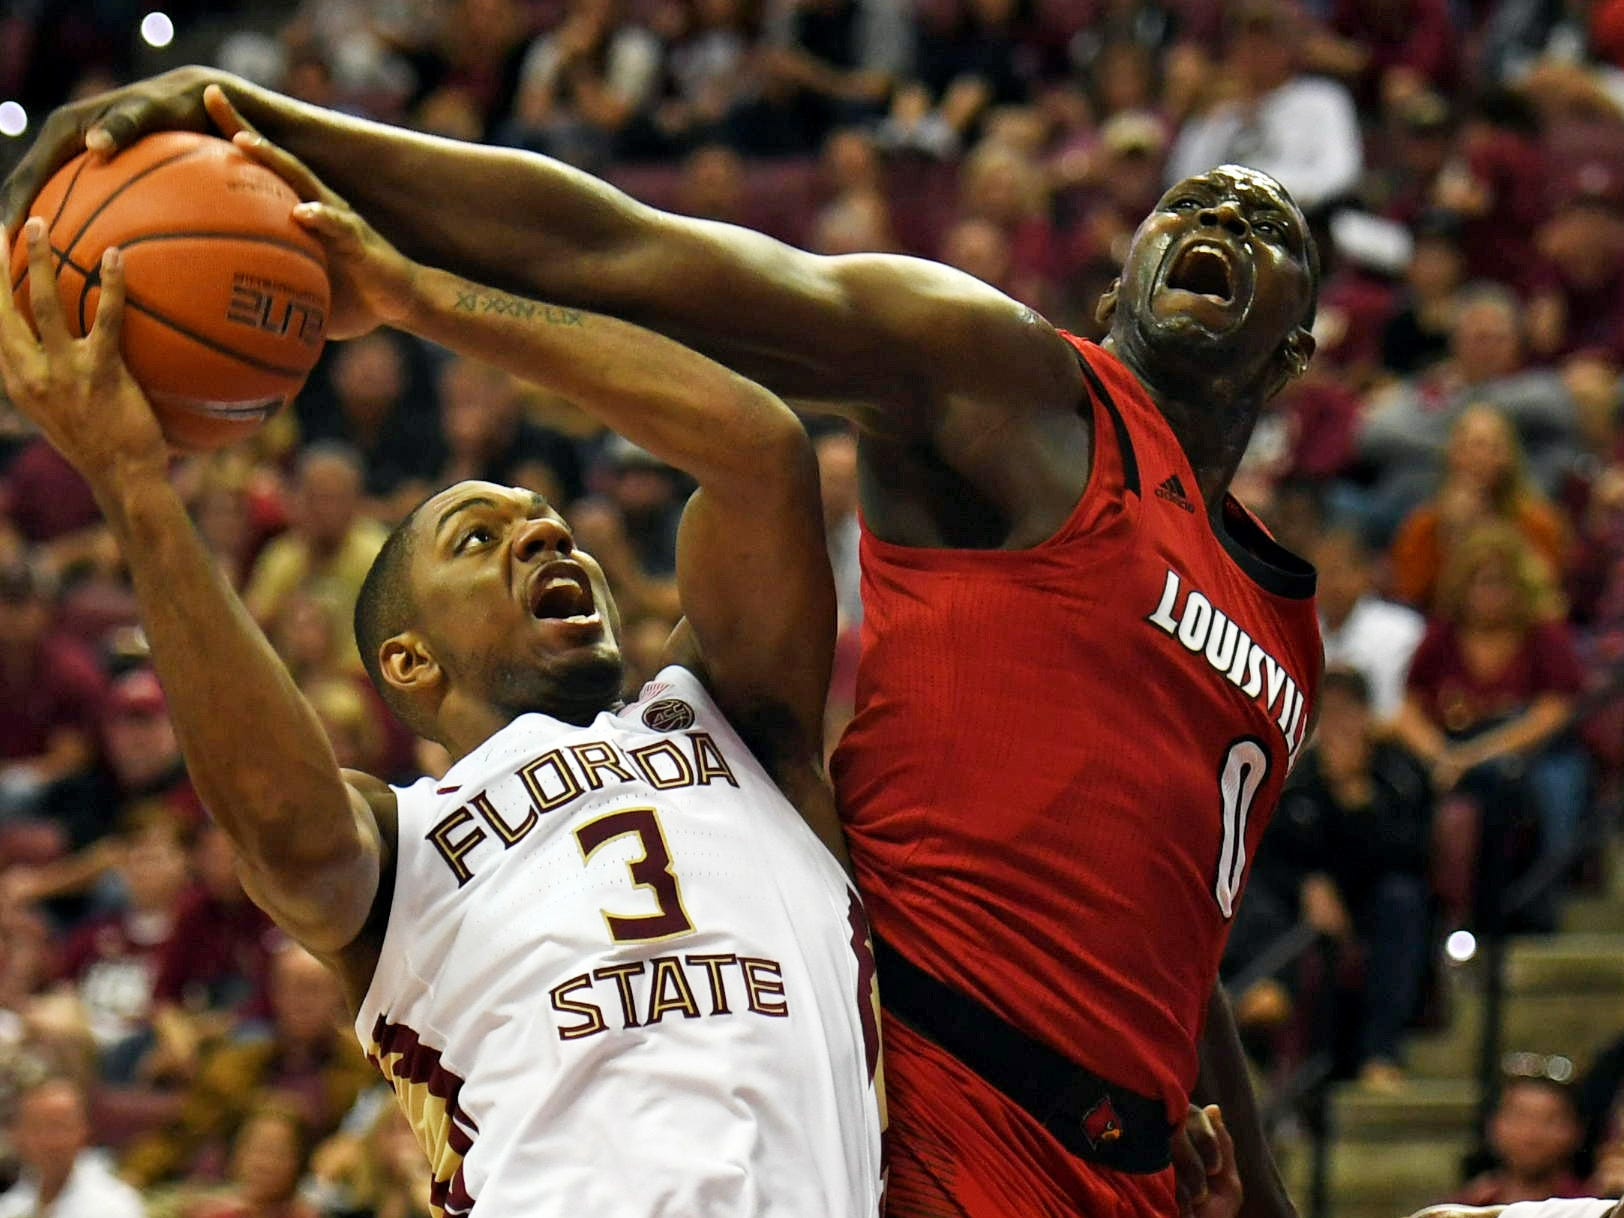 Louisville Cardinals forward Akoy Agau (0) is fouled as he tries to block the shot from Florida State Seminoles guard Trent Forrest (3) during the second half at Donald L. Tucker Center in Tallahassee, Florida, on Saturday, Feb. 9, 2019.